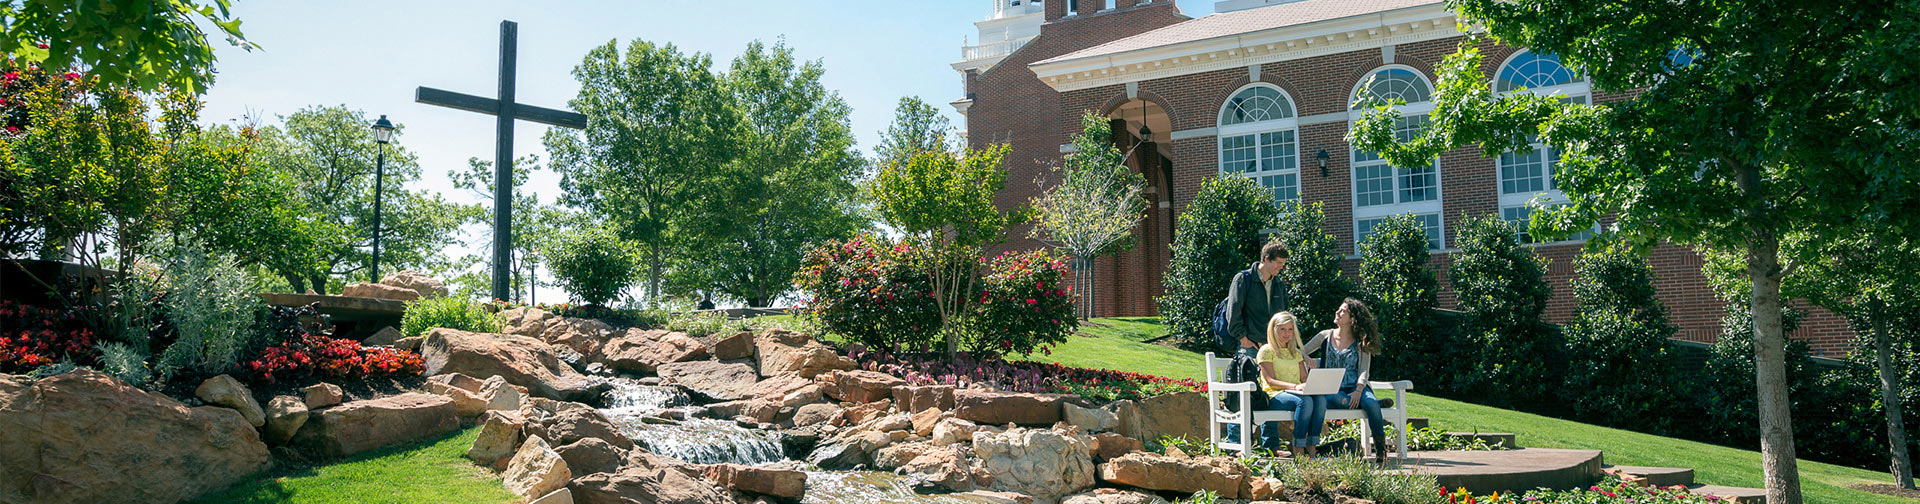 DBU Campus Picture